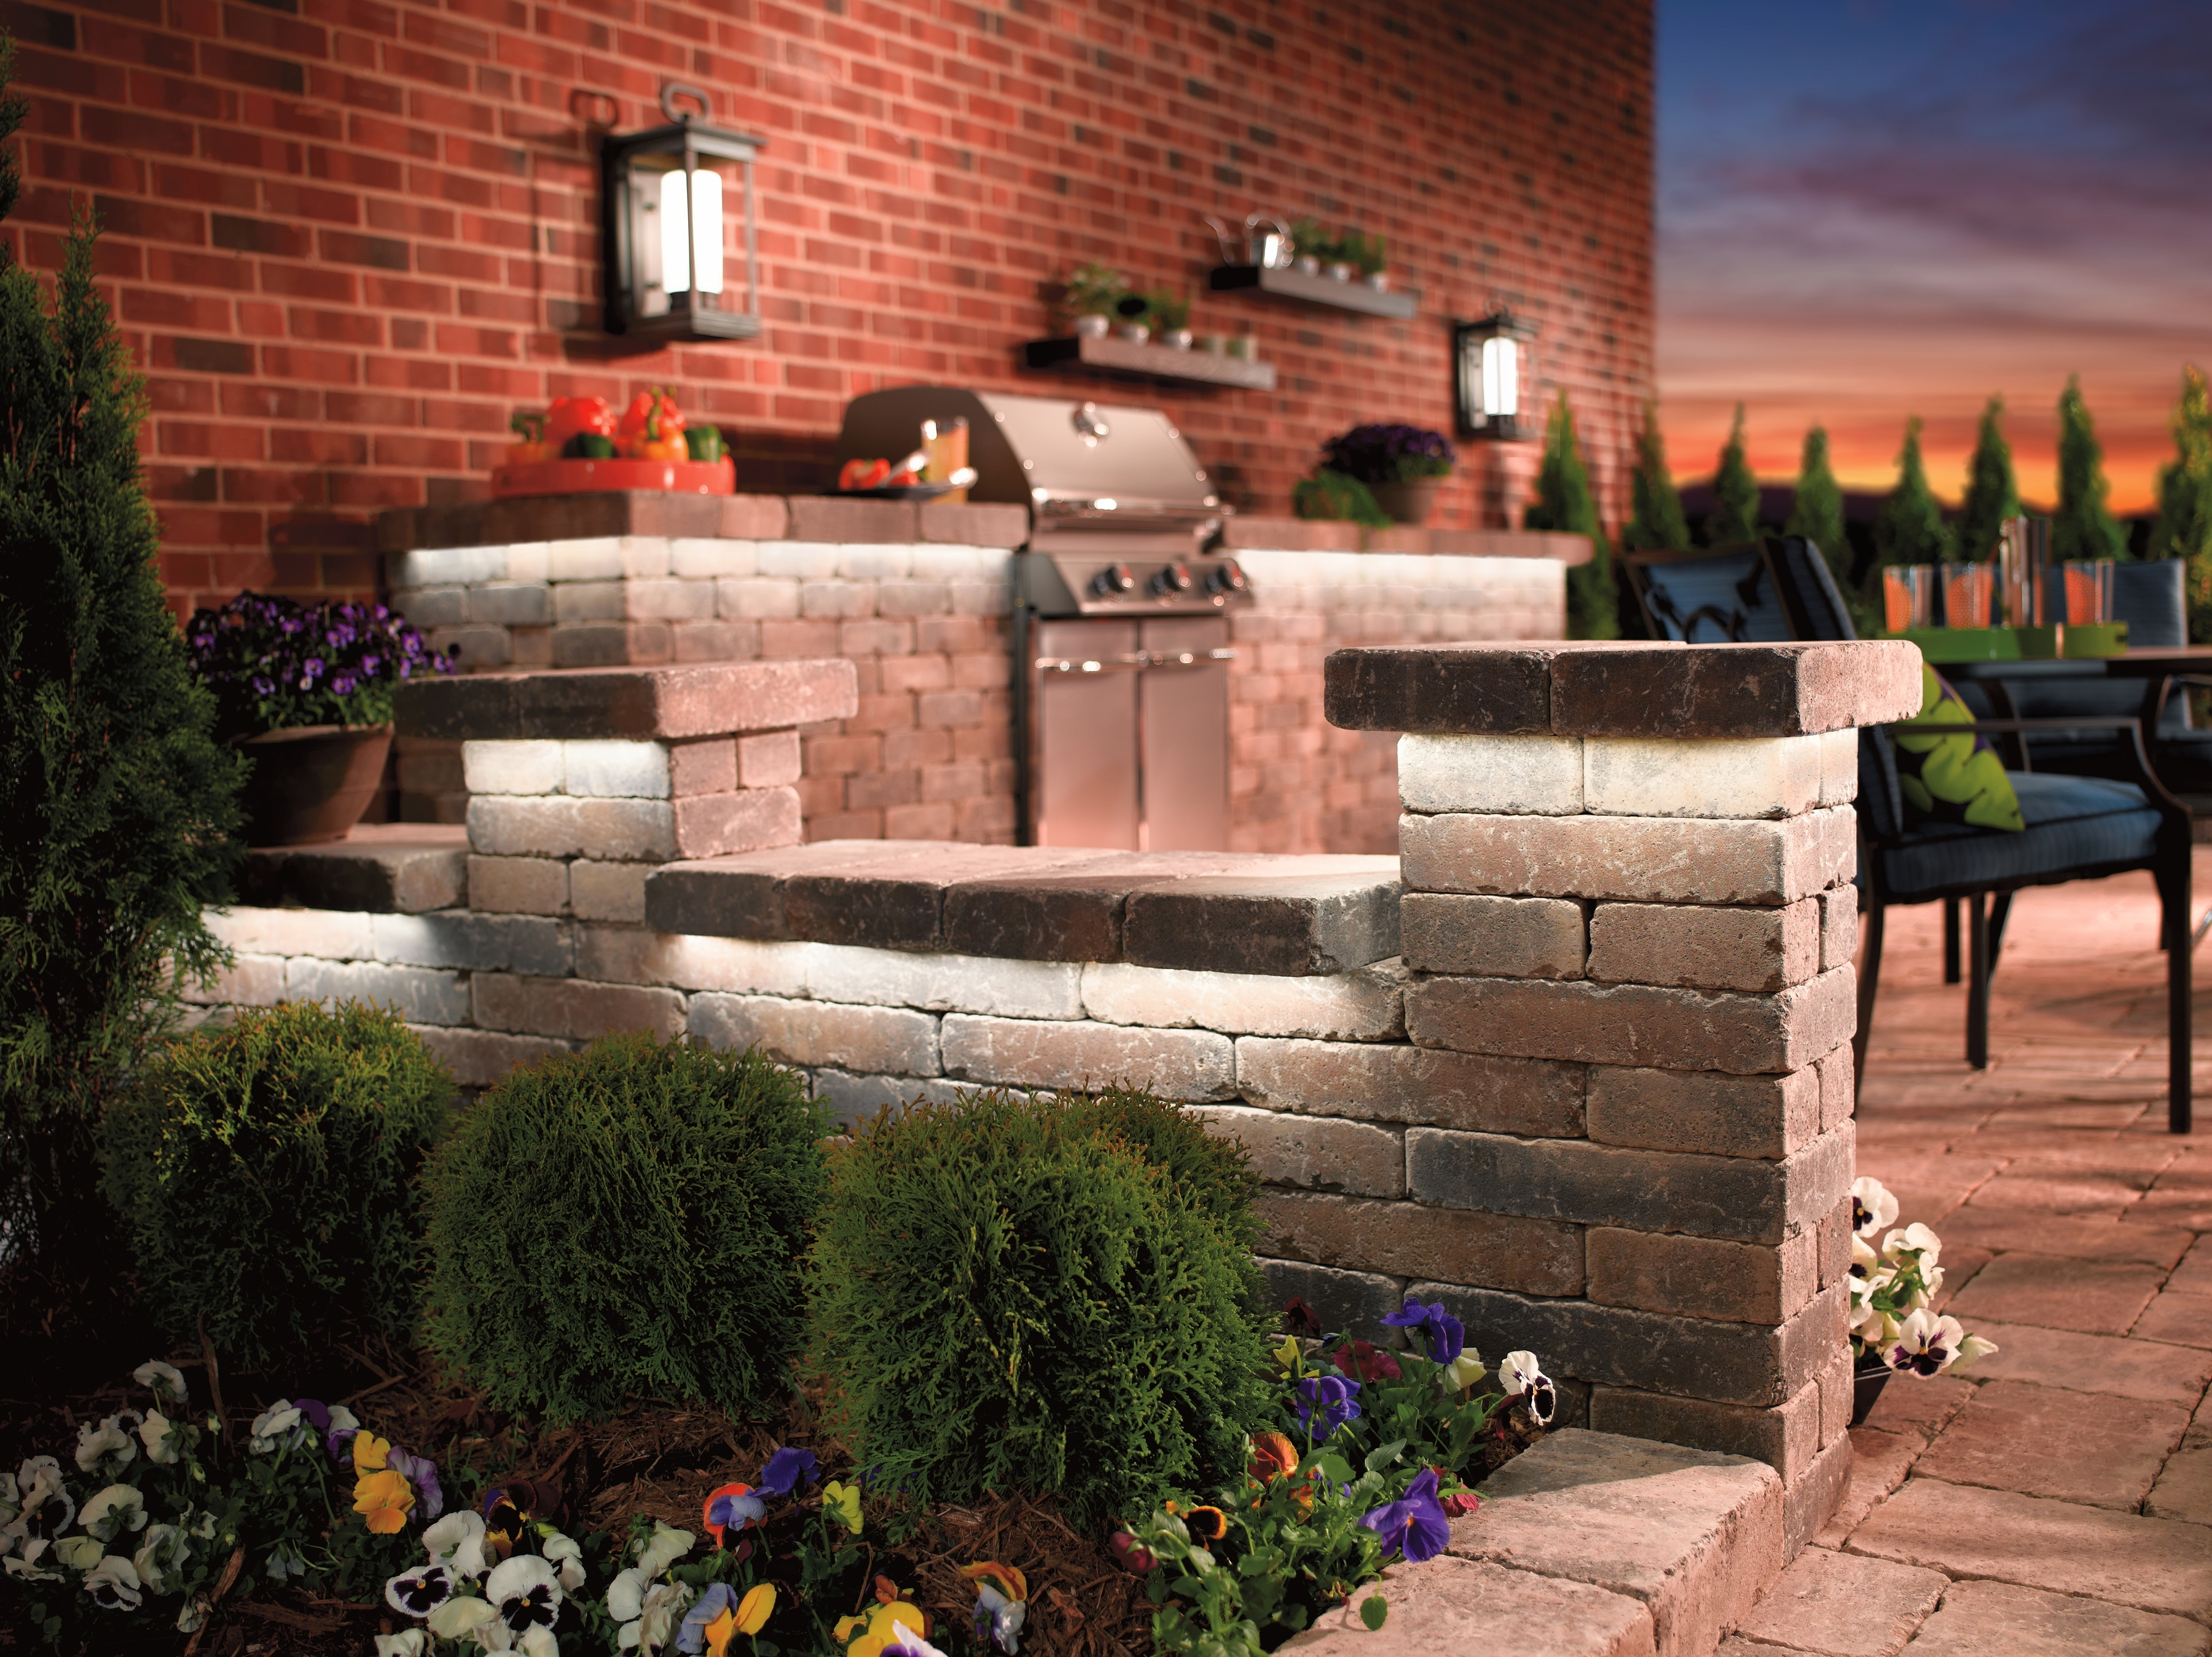 Kichler Outdoor Lanterns With Well Liked Lighting: Kichler Outdoor Lighting With Landscape Flood Lights And (View 11 of 20)